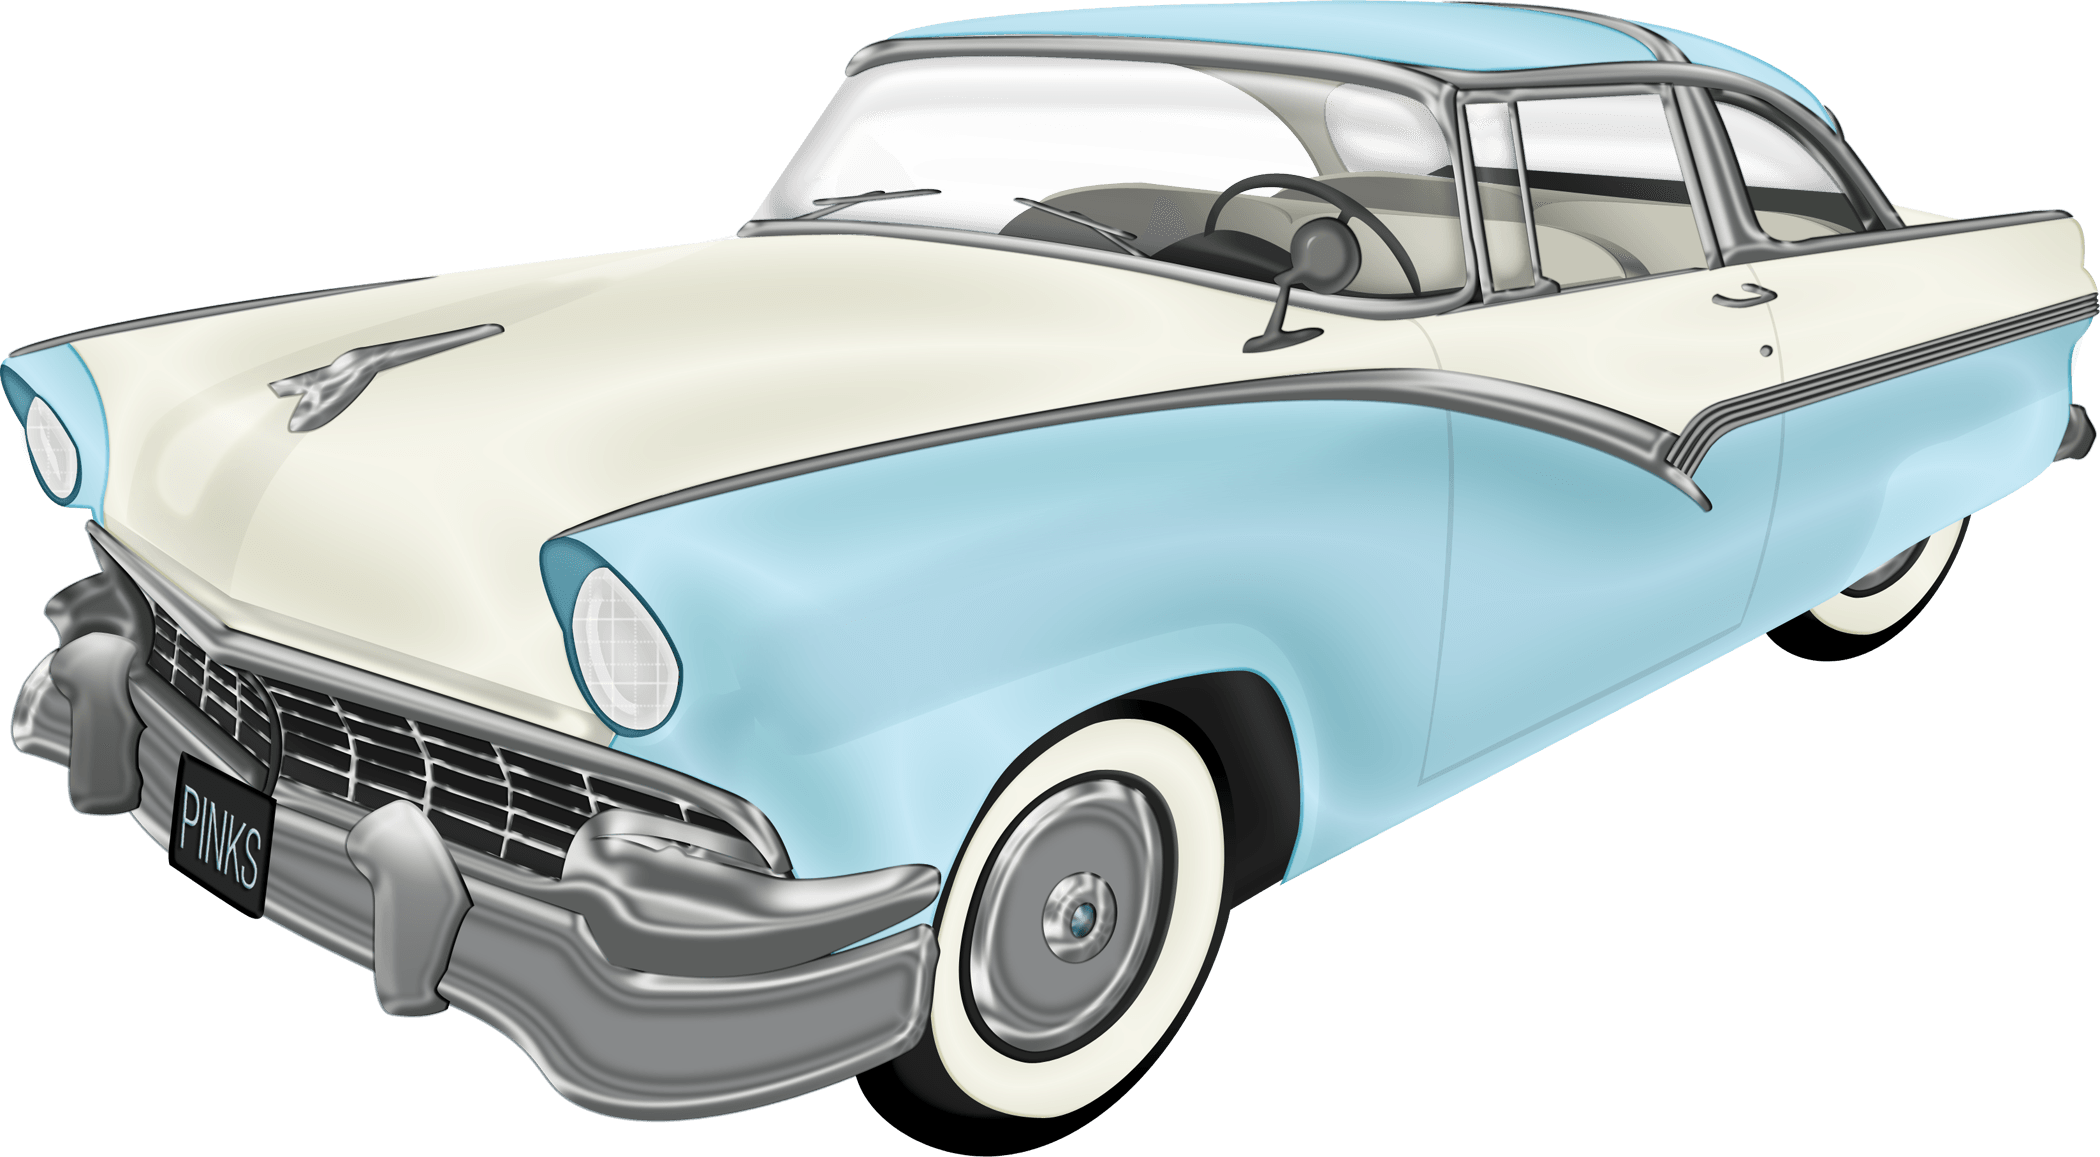 Pin On Cadillac Images